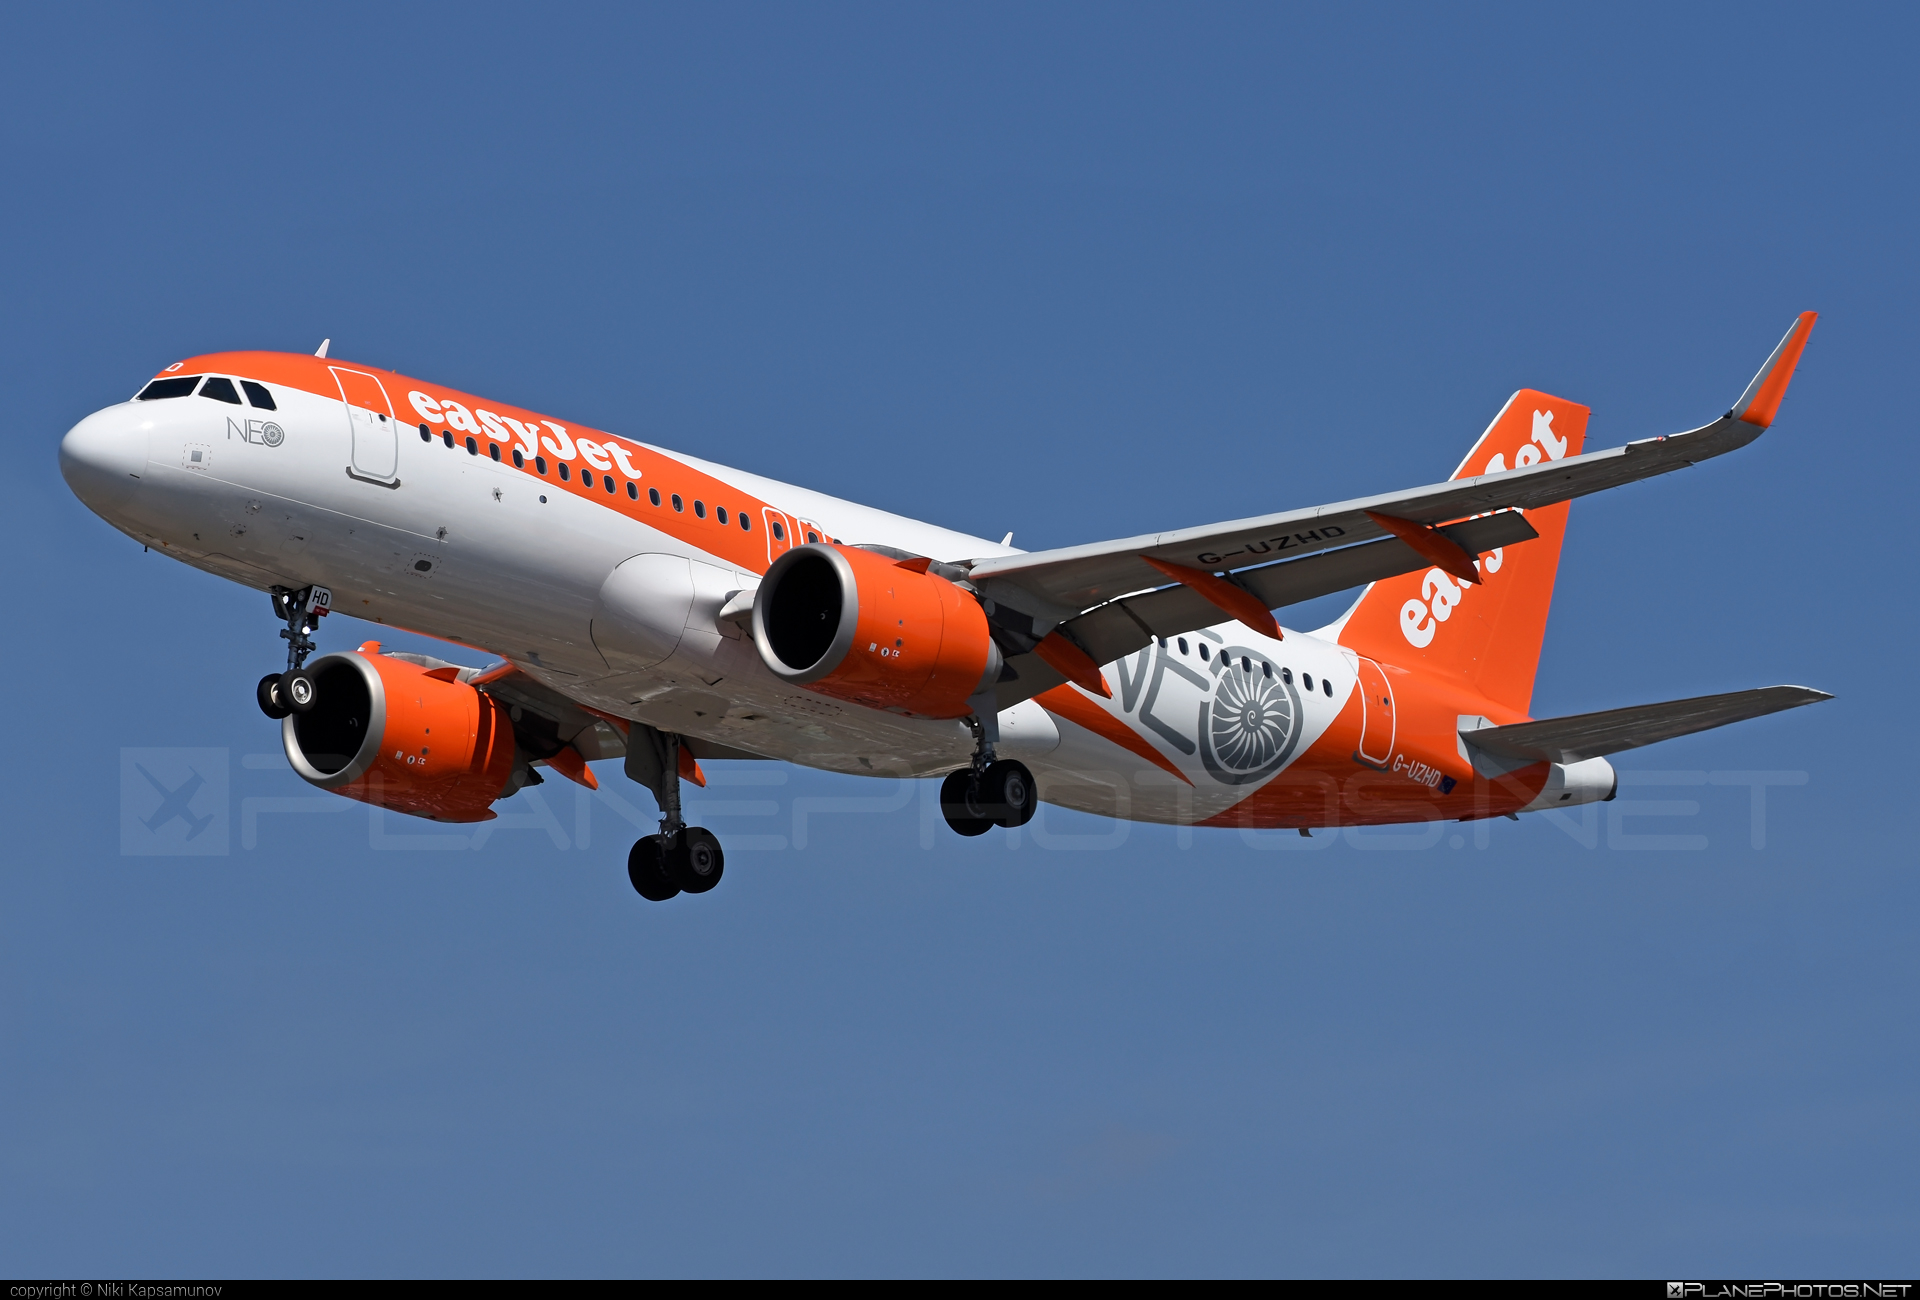 Airbus A320-251N - G-UZHD operated by easyJet #a320 #a320family #a320neo #airbus #airbus320 #easyjet